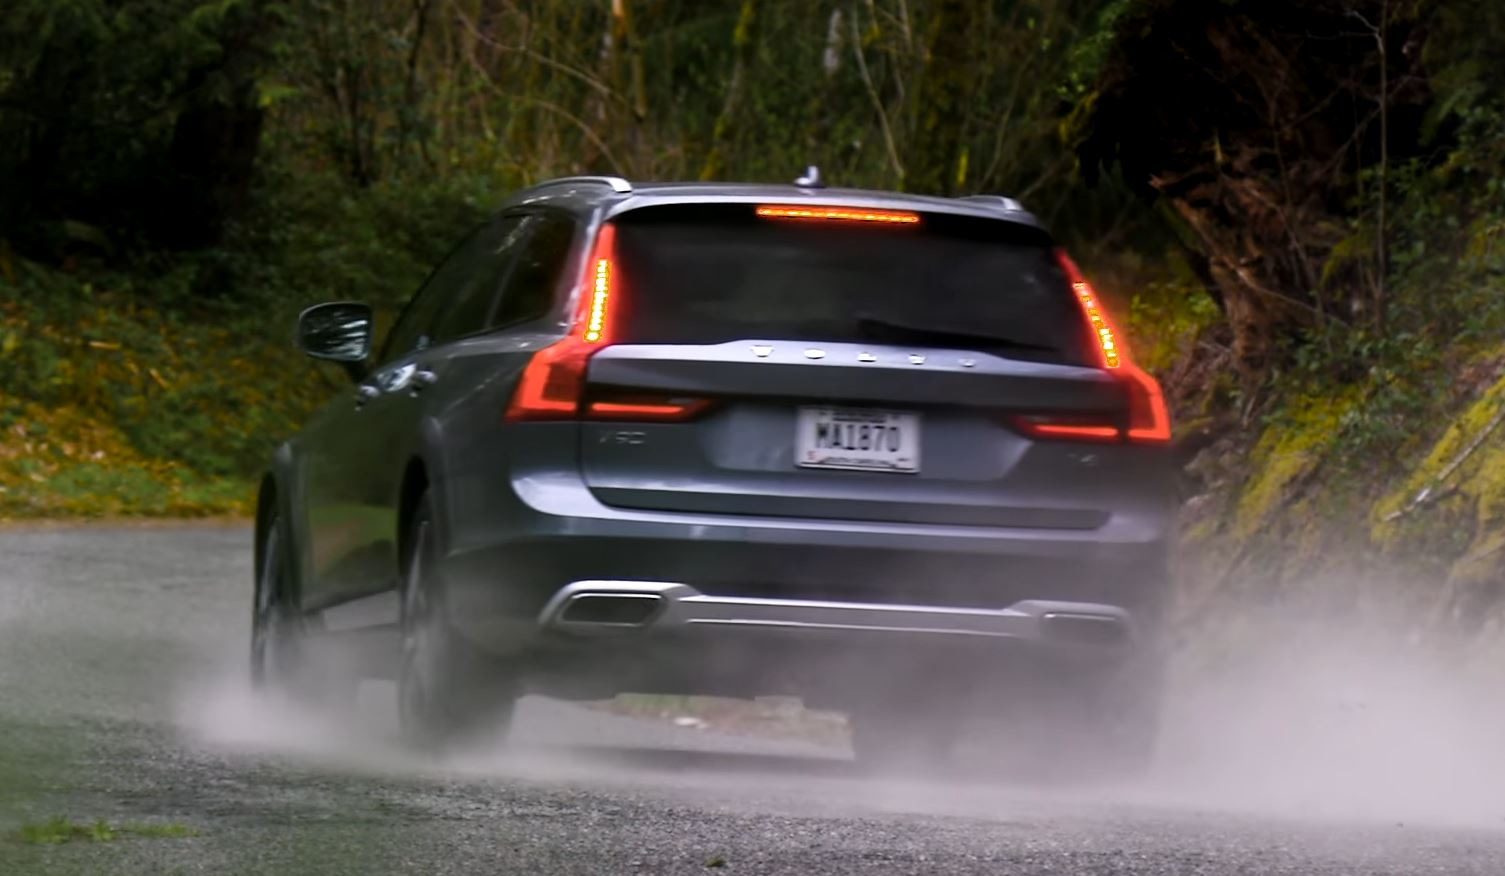 randy pobst review of volvo v90 cross country combines nostalgia and hooning